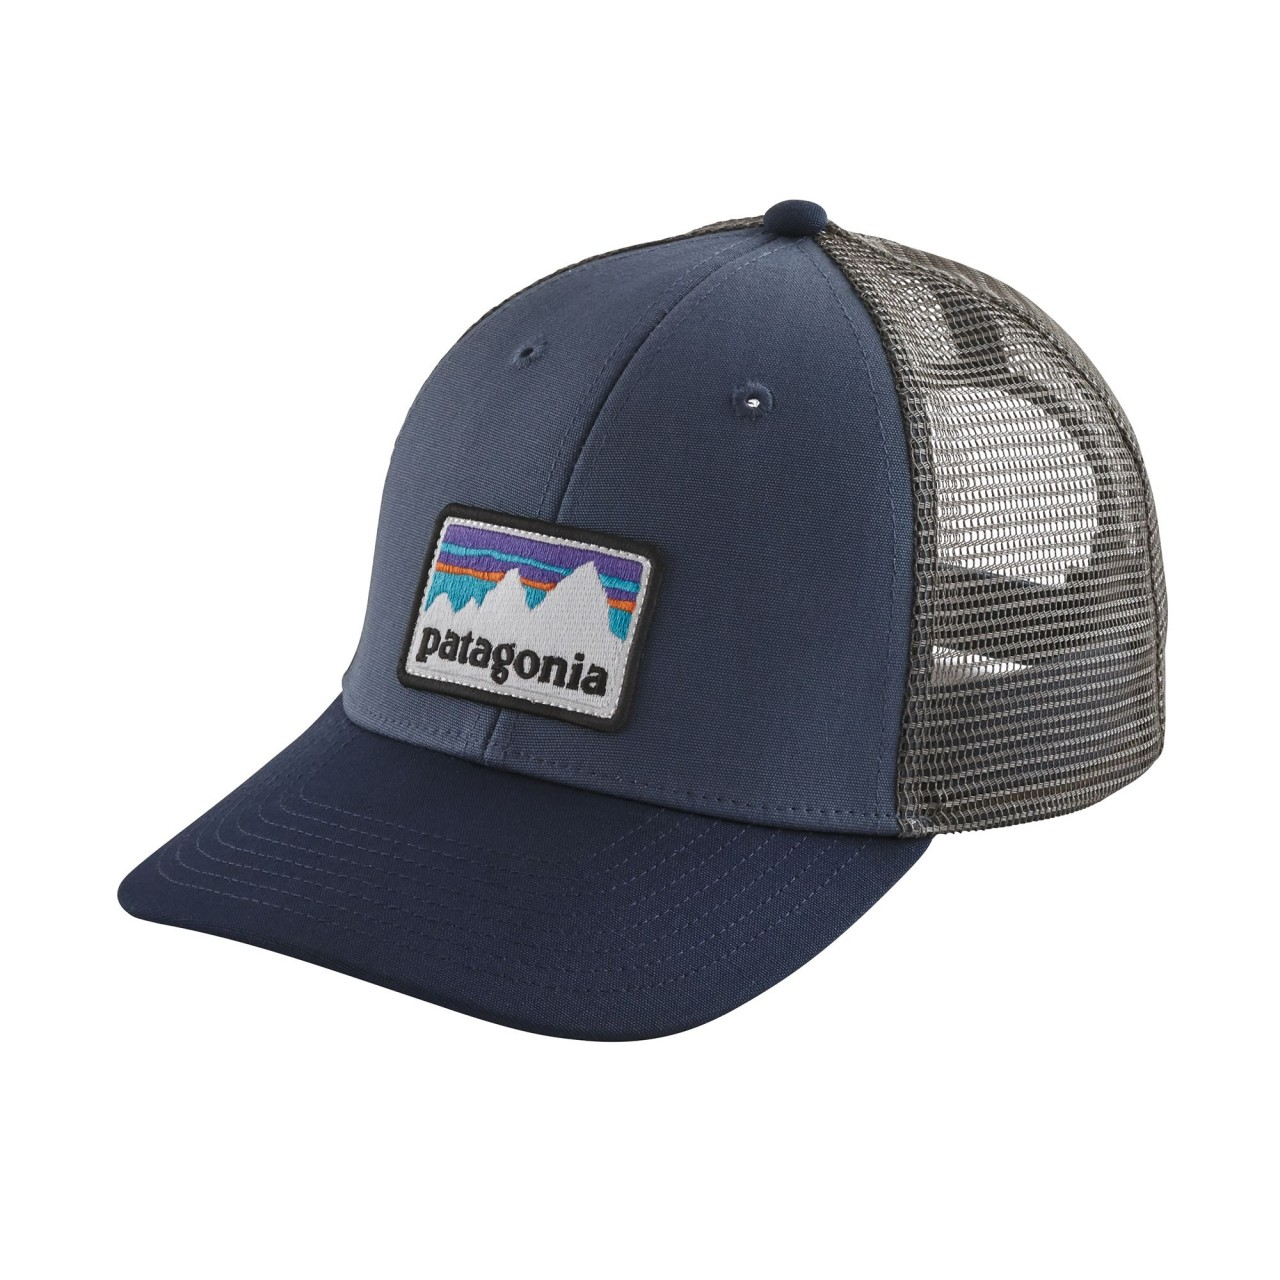 cfd33b2da77 The Patagonia P-6 LoPro Trucker Hat is a classic trucker hat with the all  important Patagonia P-6 logo on the front. The LoPro version features ...